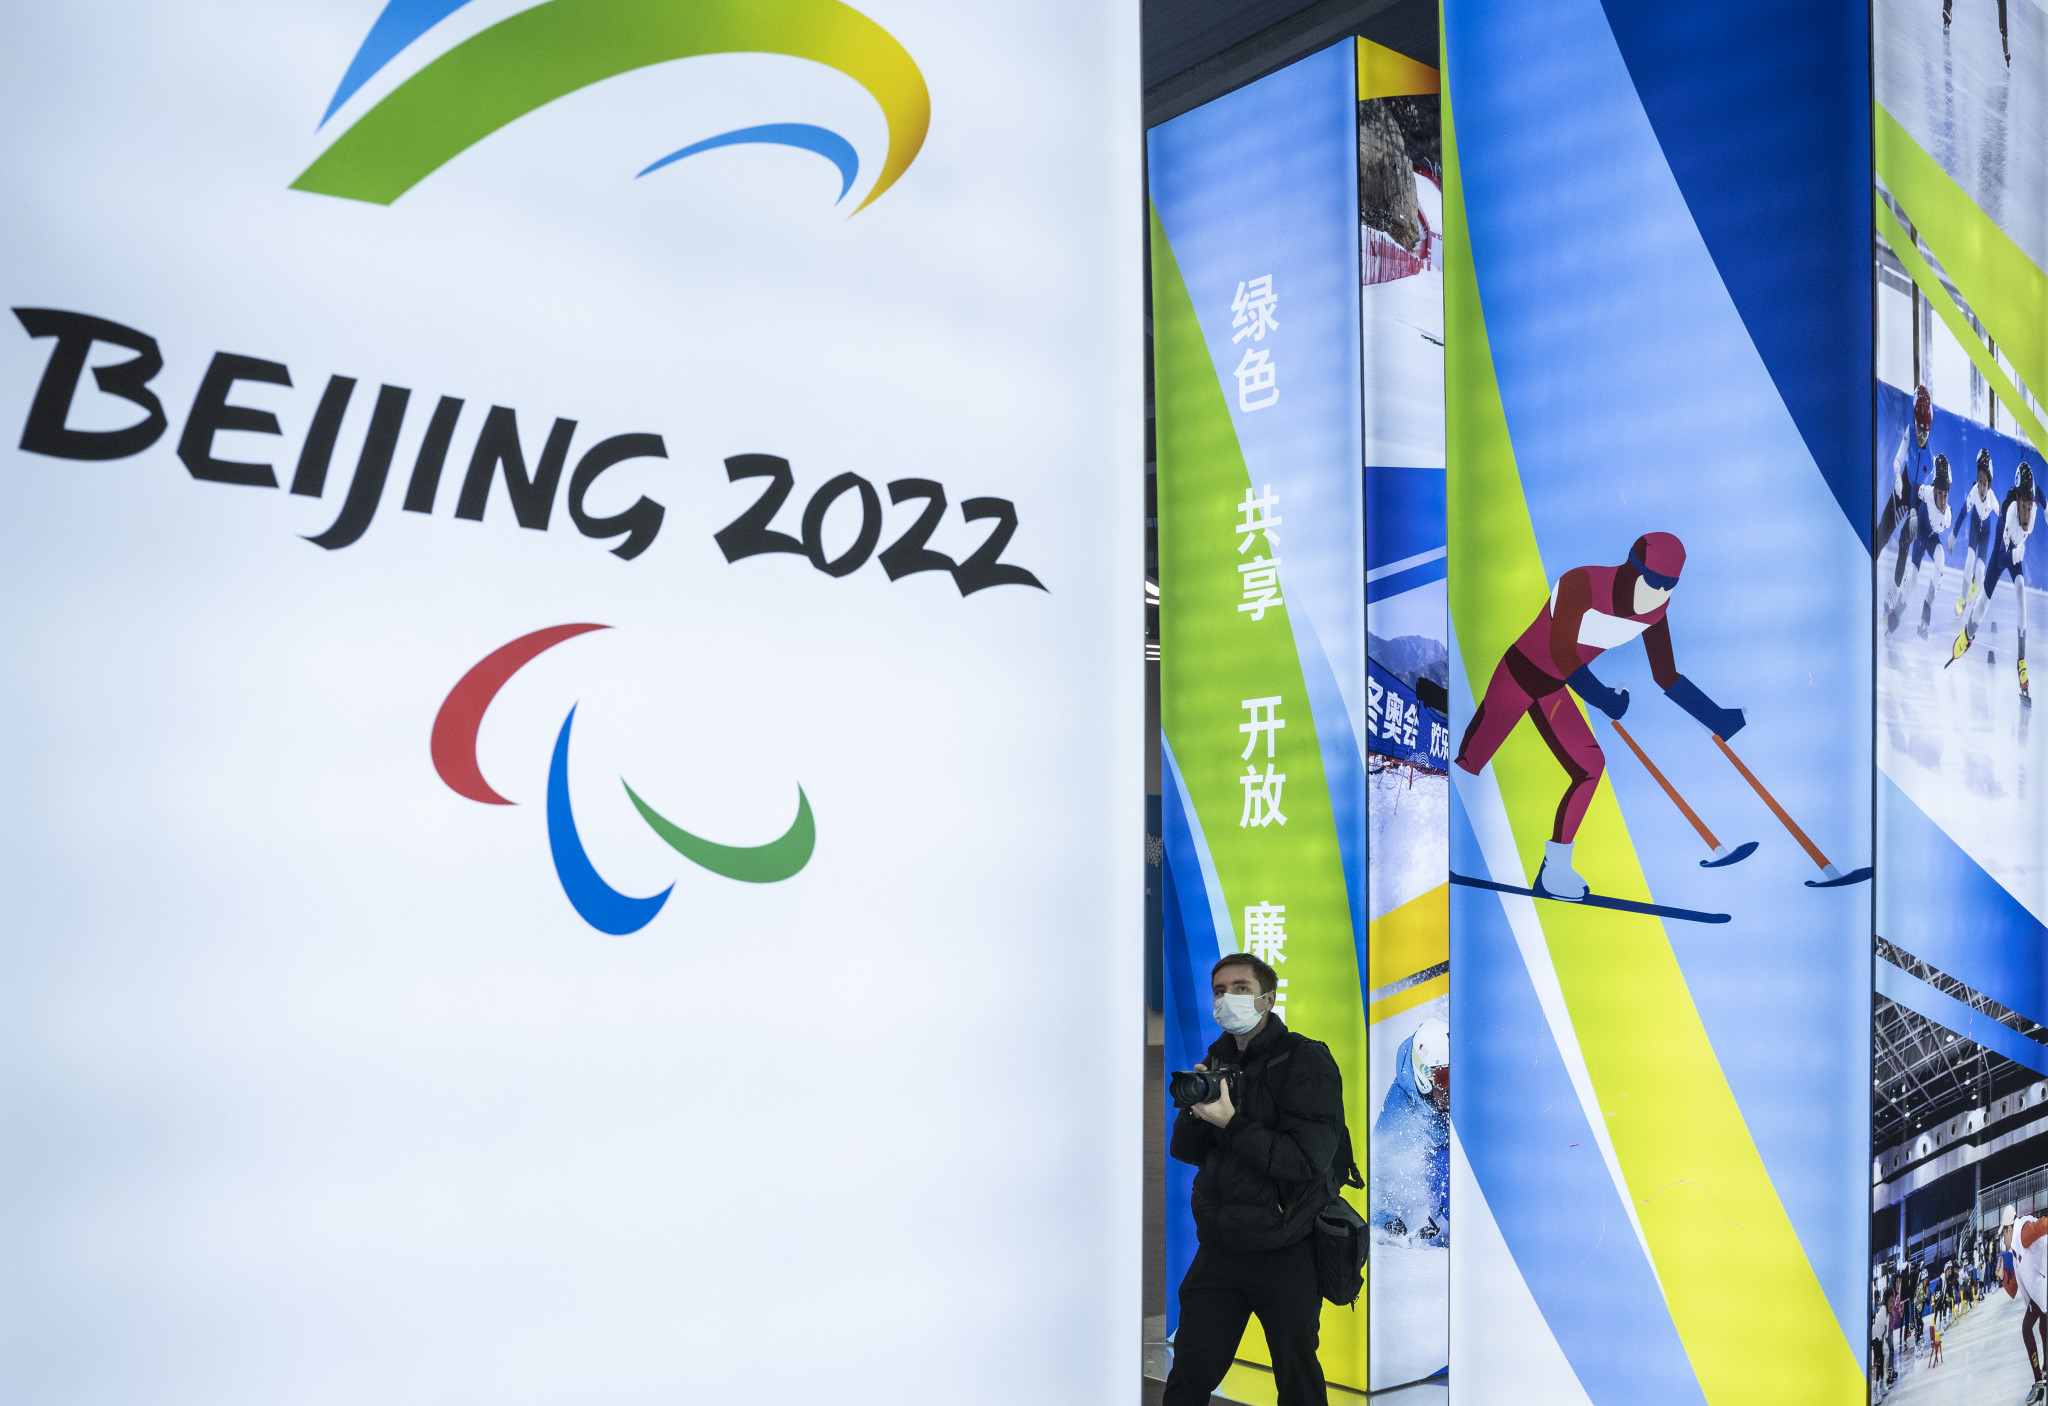 The build-up to Beijing 2022 has seen a focus on human rights concerns ©Getty Images